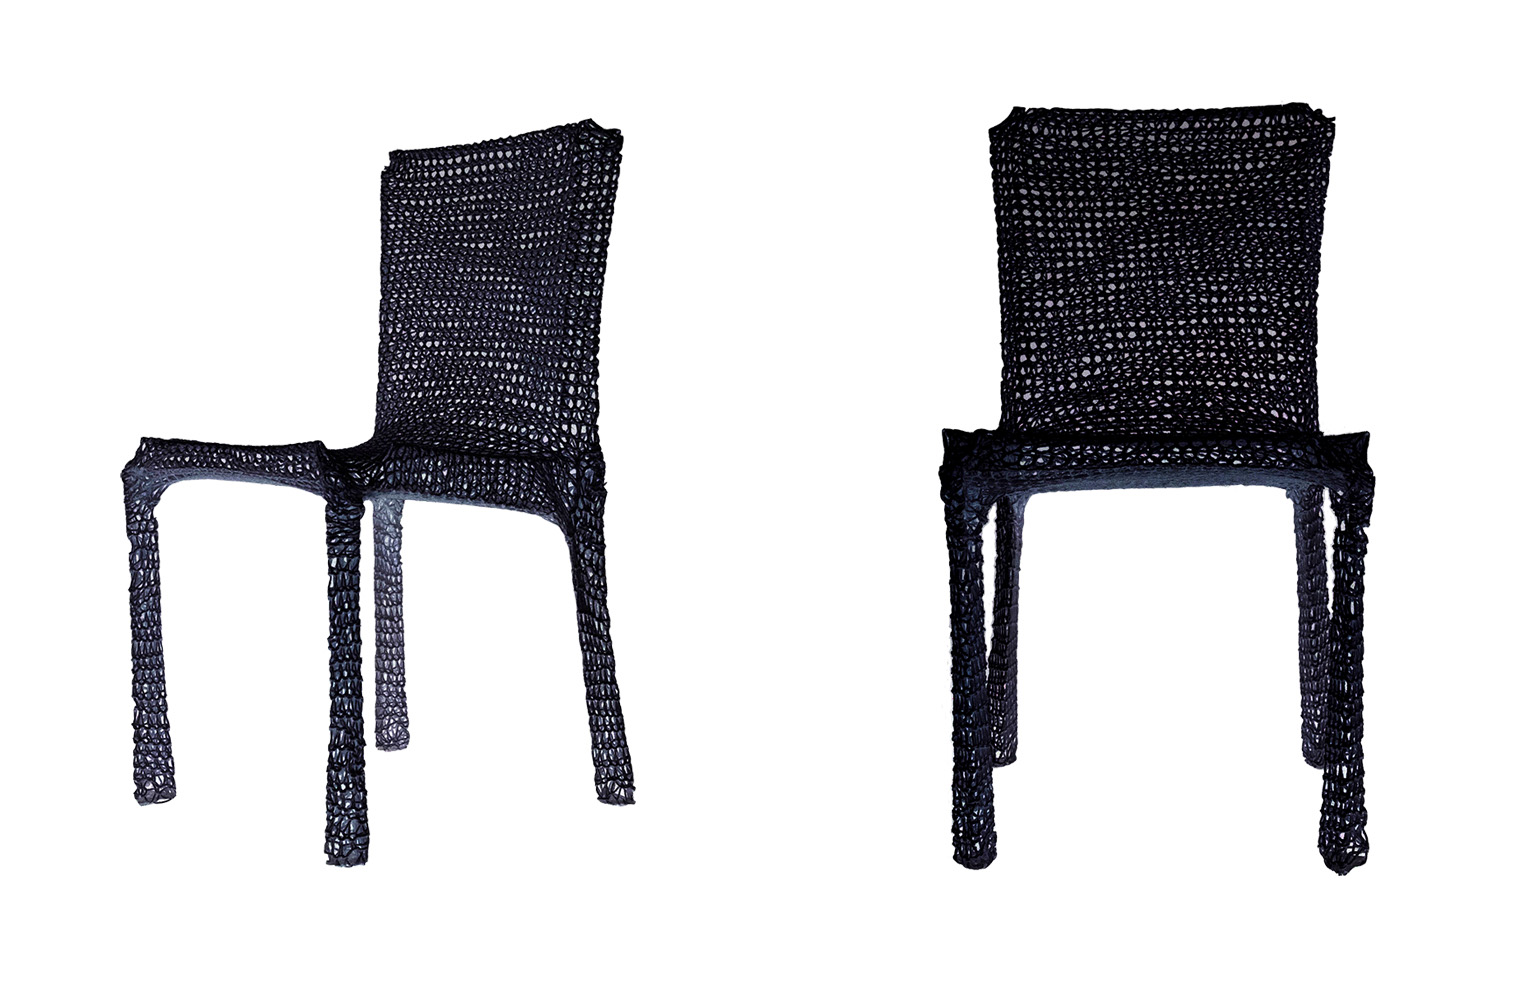 chair_profiles_inverted.jpg